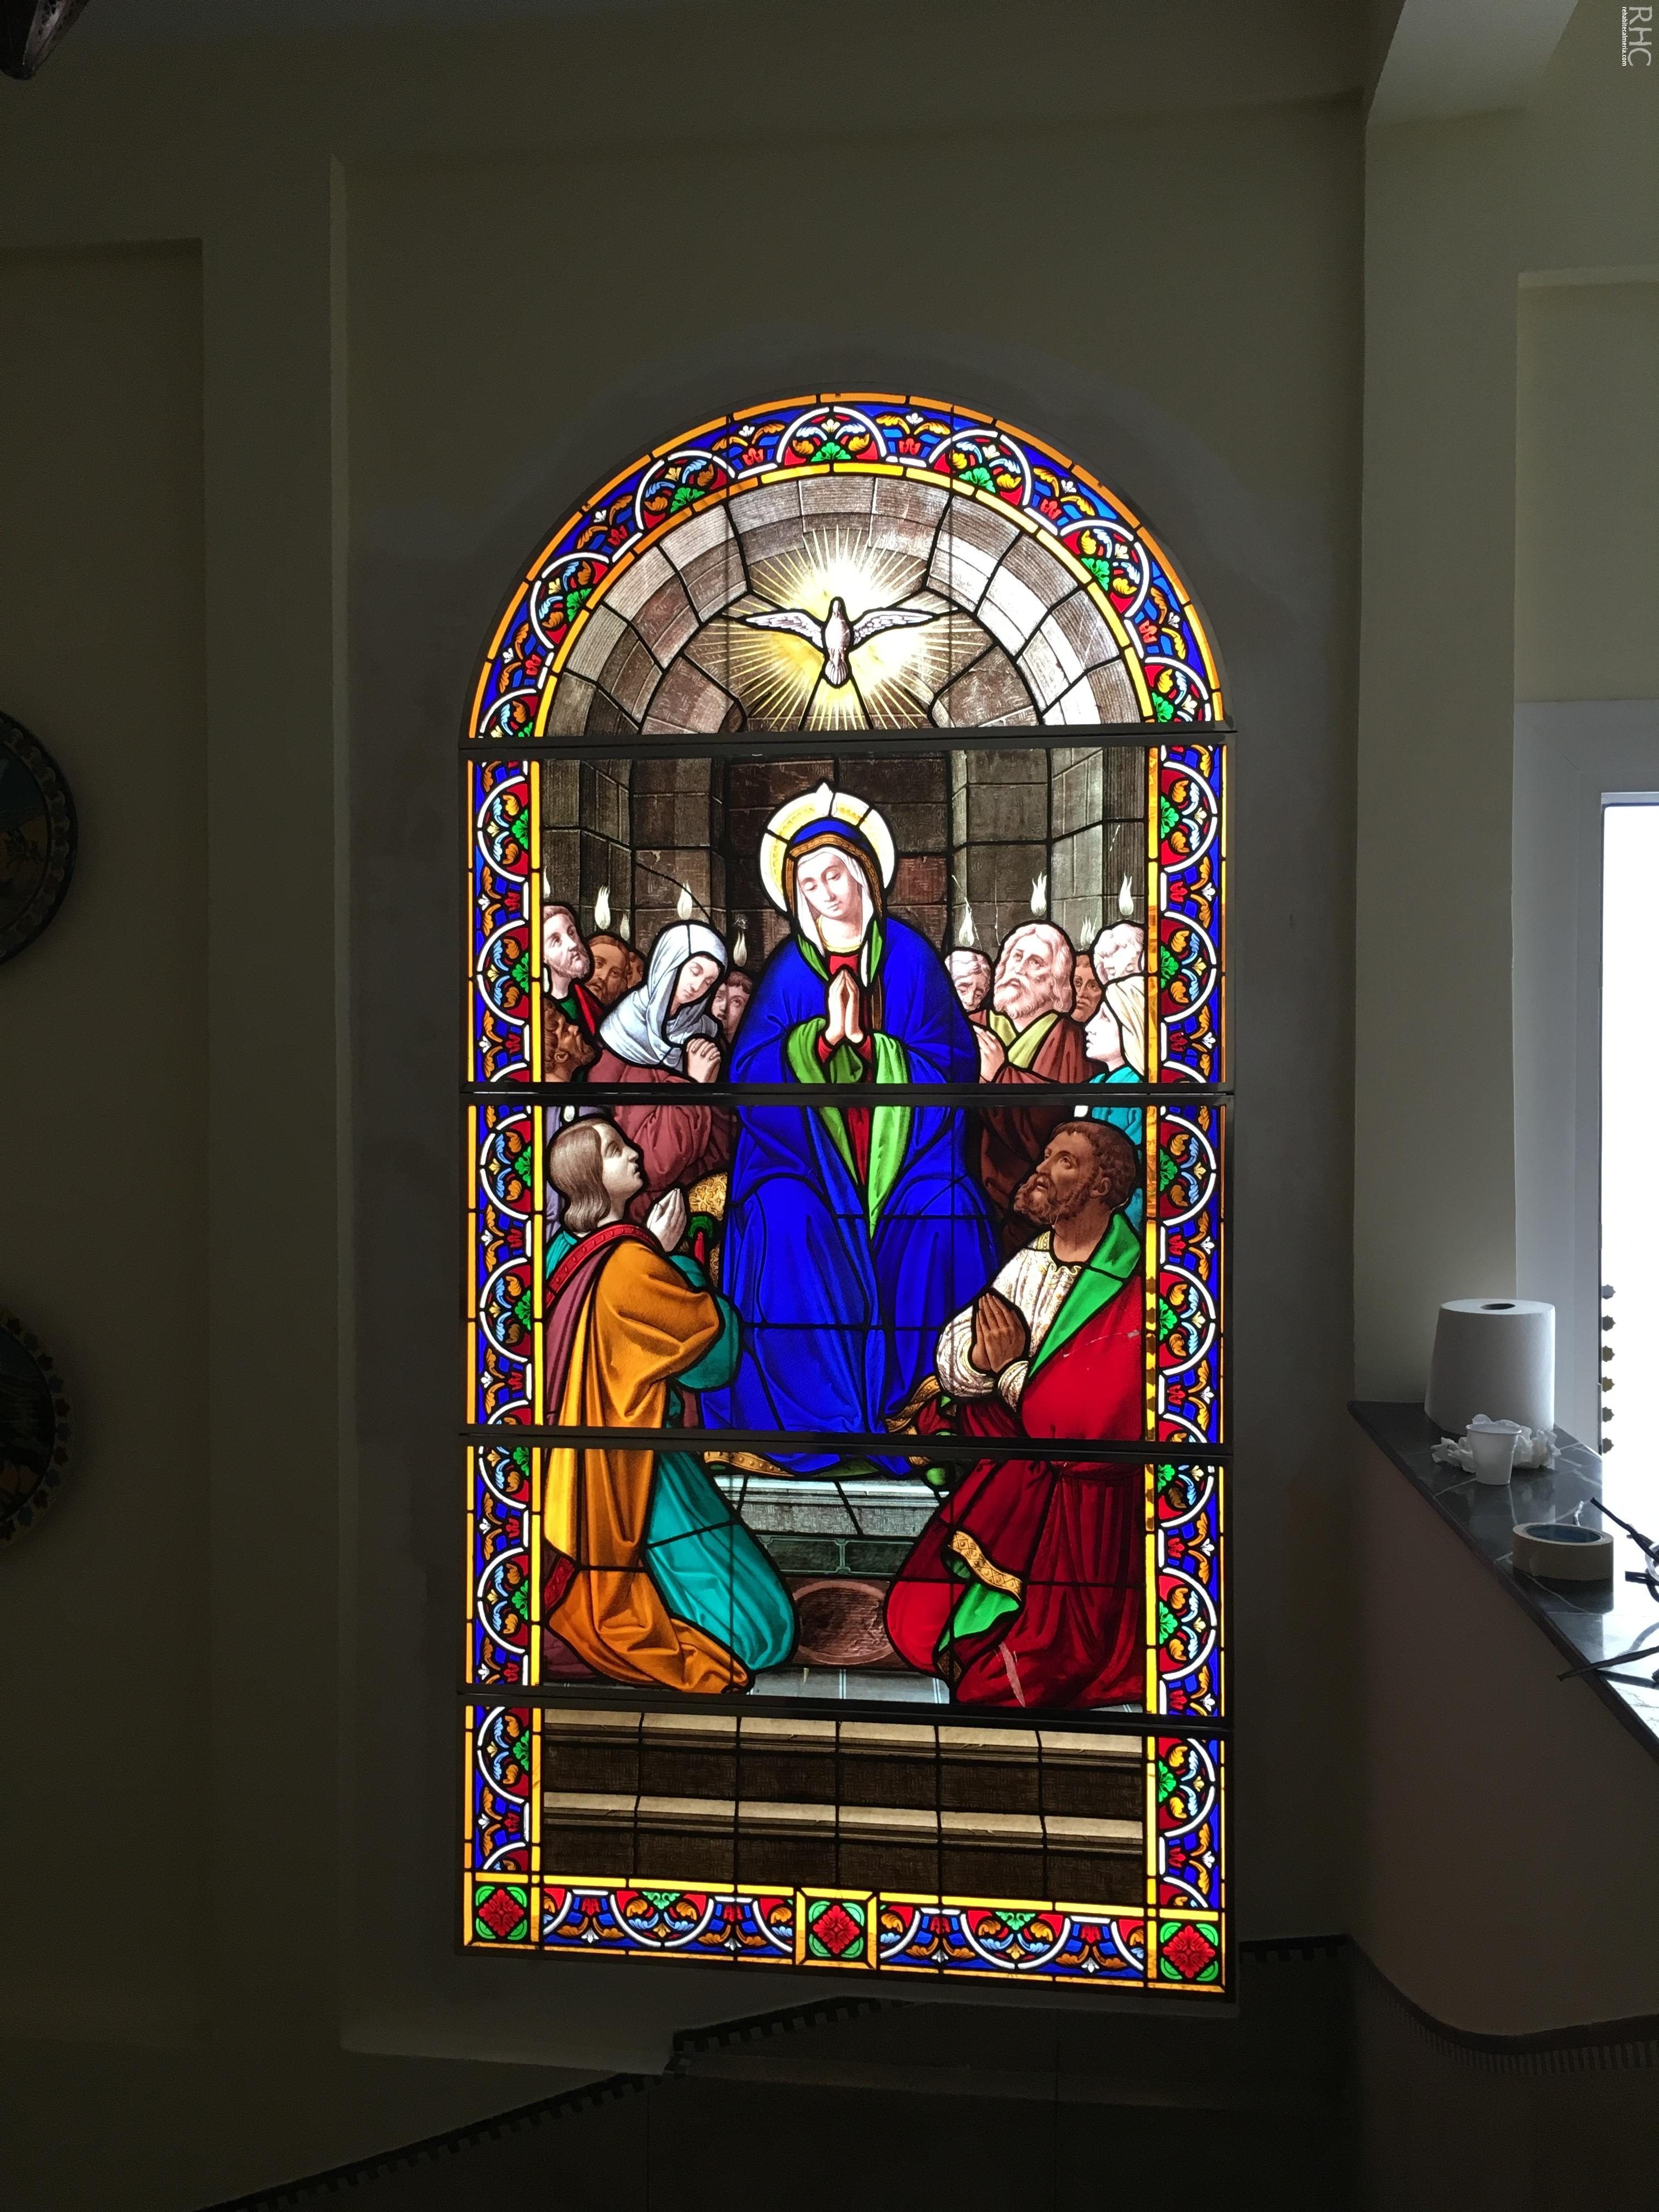 STAINED-GLASS ART